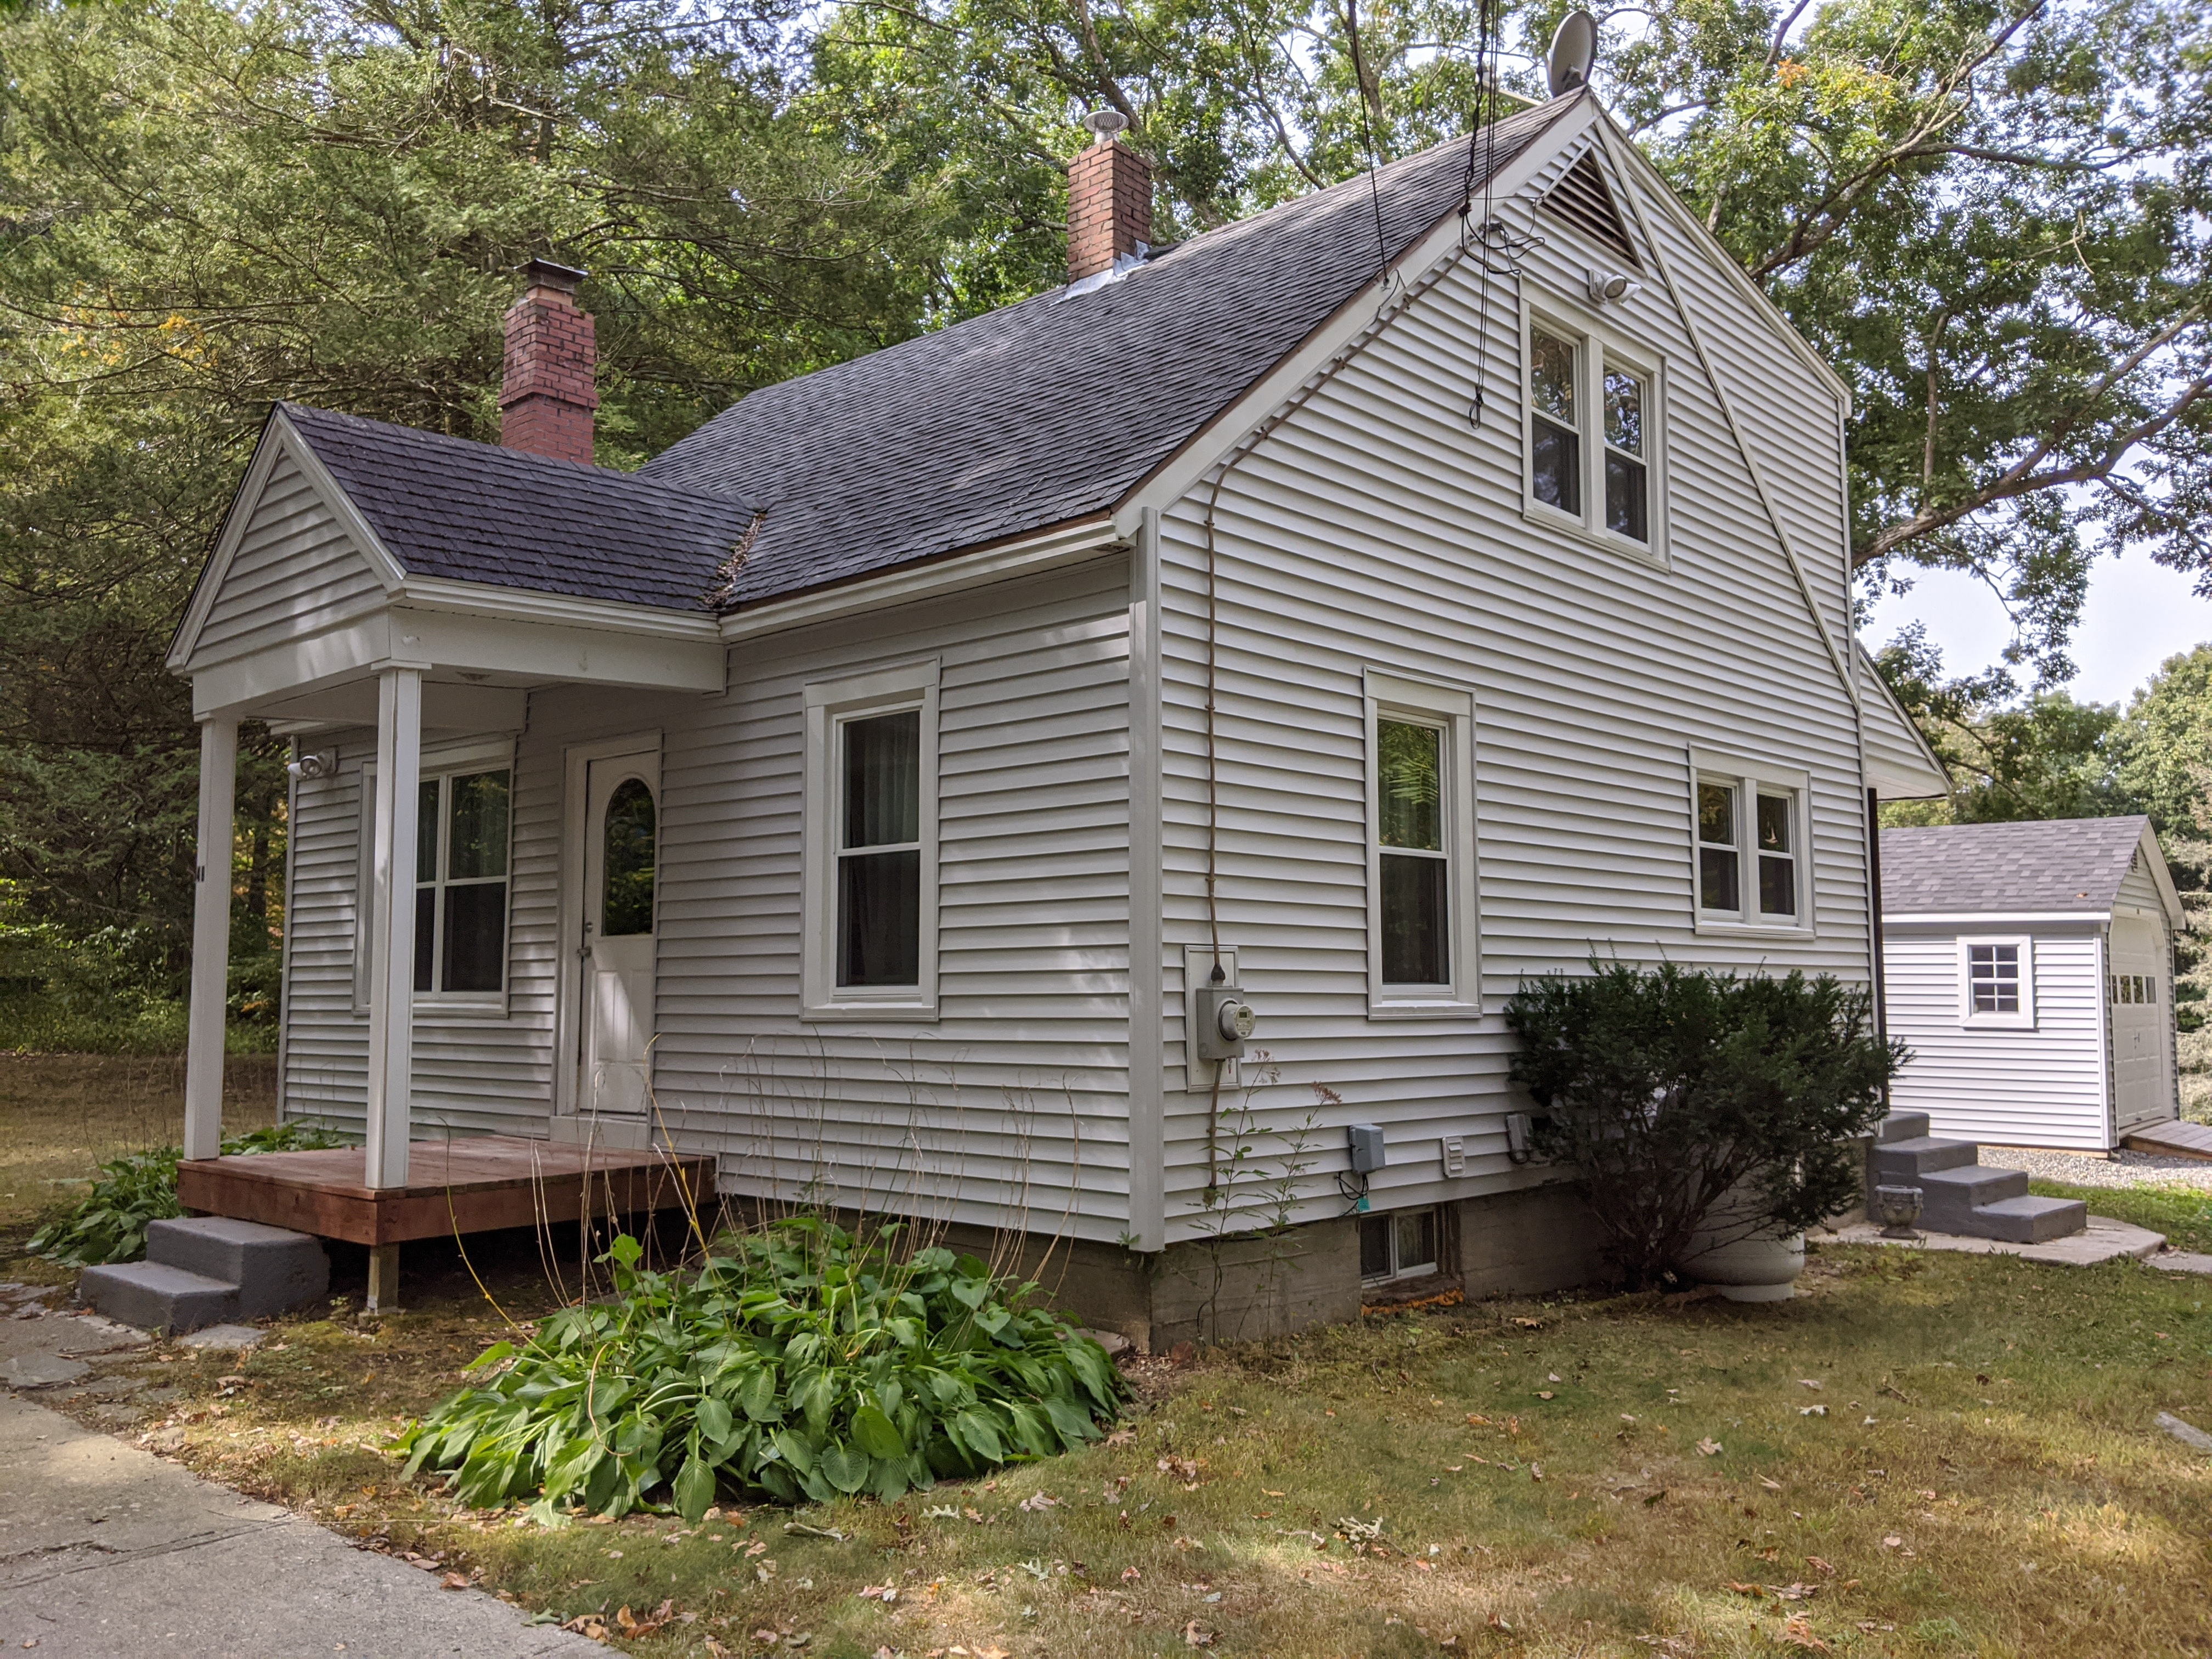 Bridget Morrissey eXp Realty Realtor sold 49 North Wawecus Hill Road in Norwich